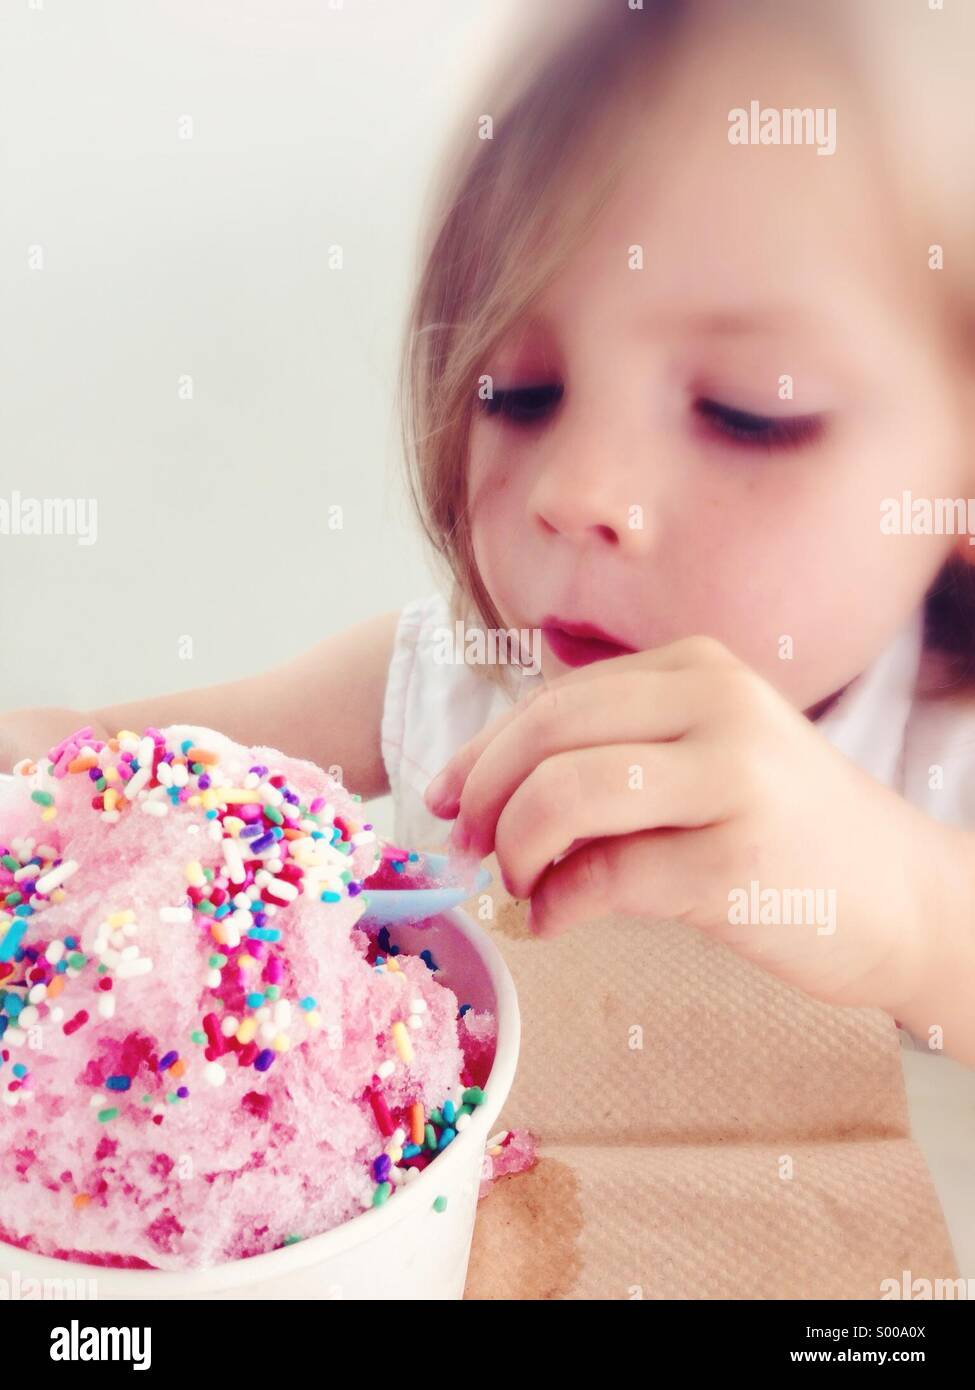 A little girl enjoys a frozen treat with sprinkles on topStock Photo